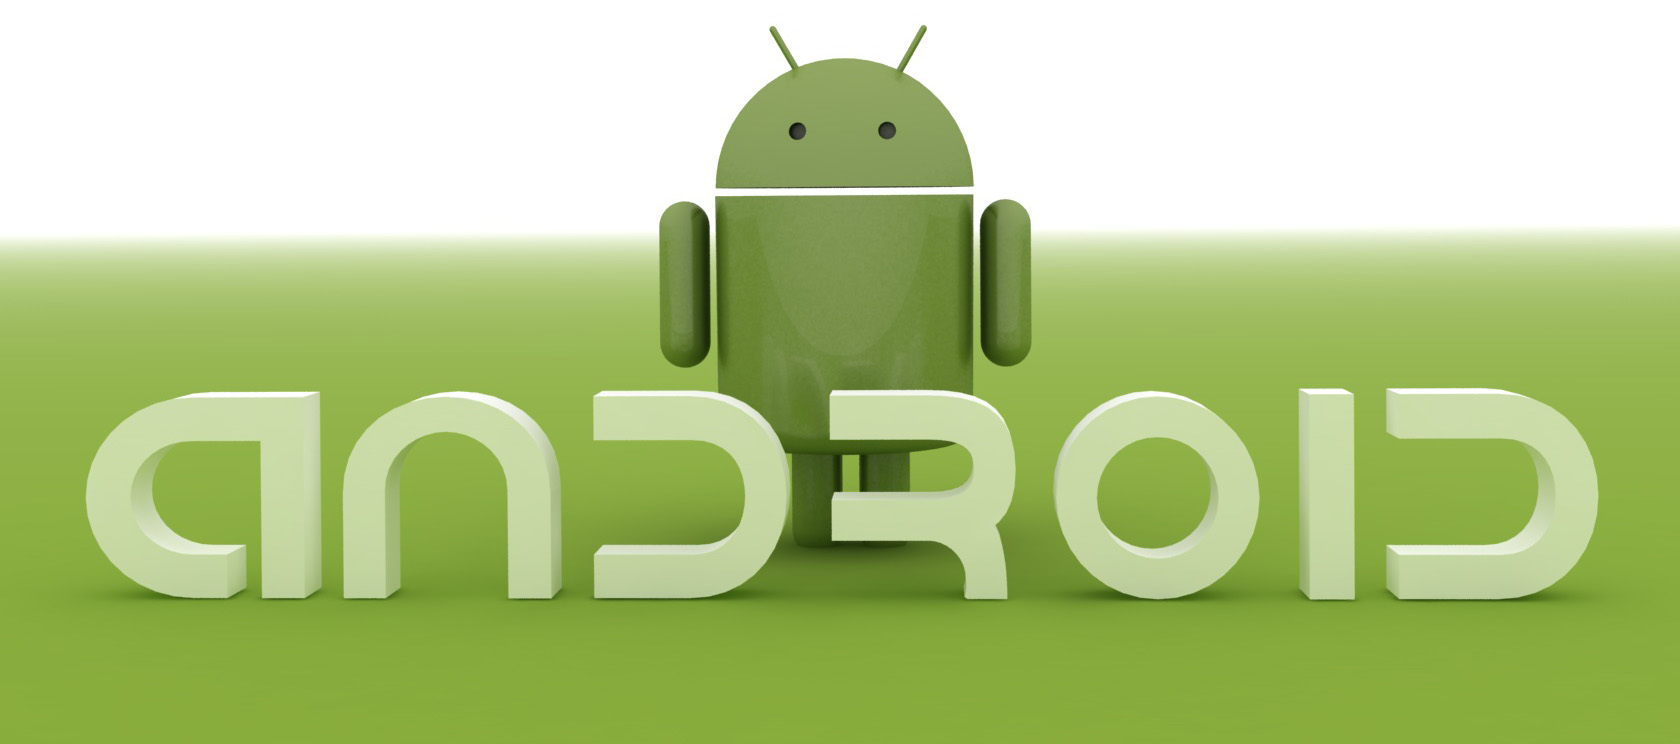 android development bangalore